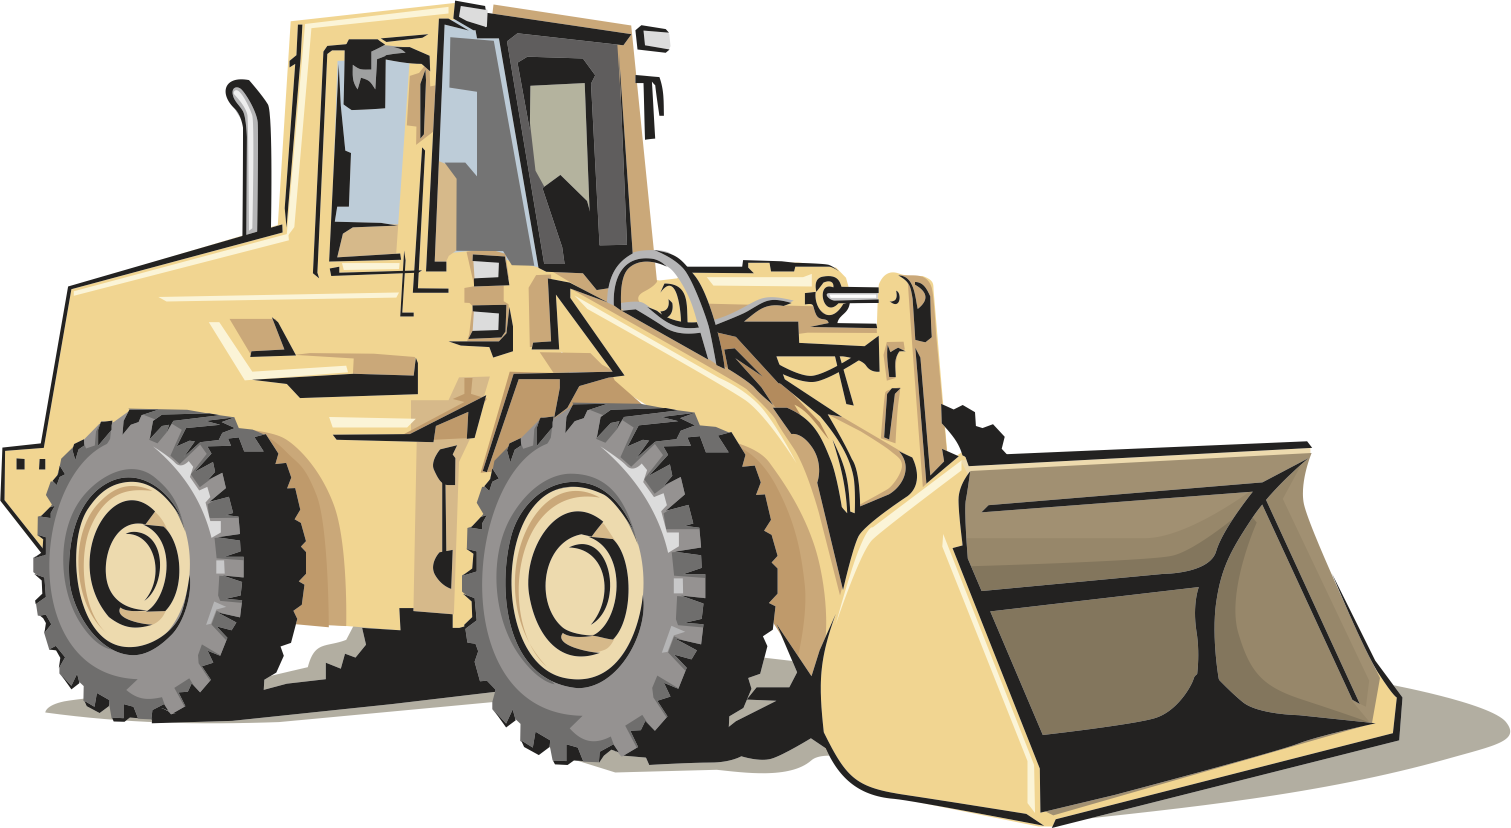 Heavy equipment architectural engineering. Excavator clipart construction